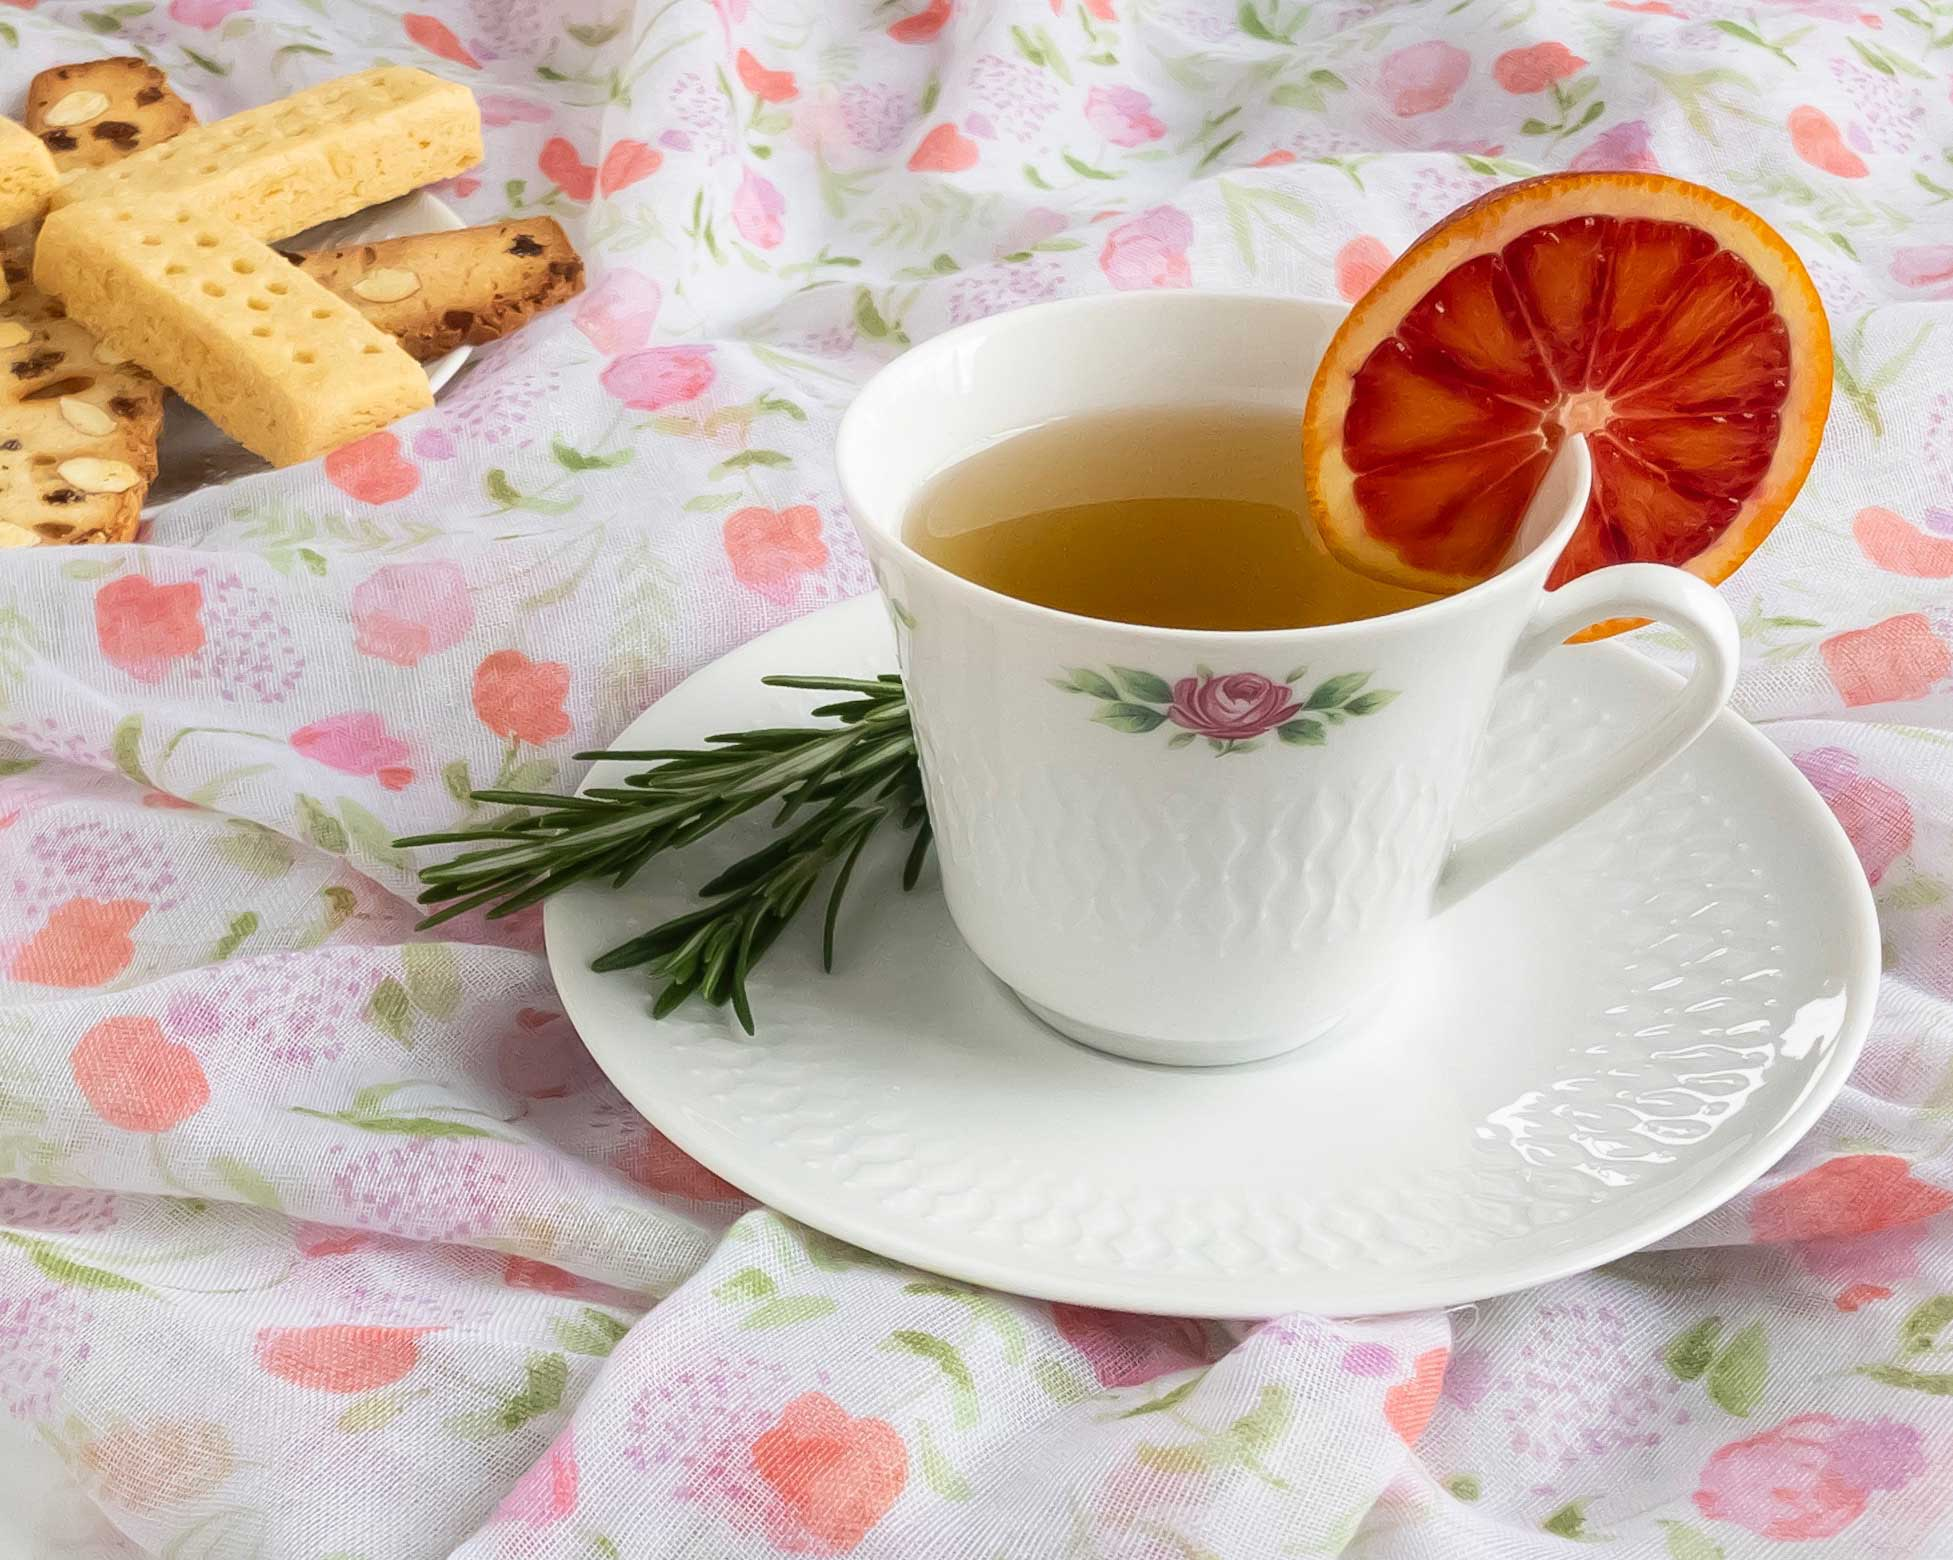 Rosemary Mint Tea, garnished with a blood orange slice